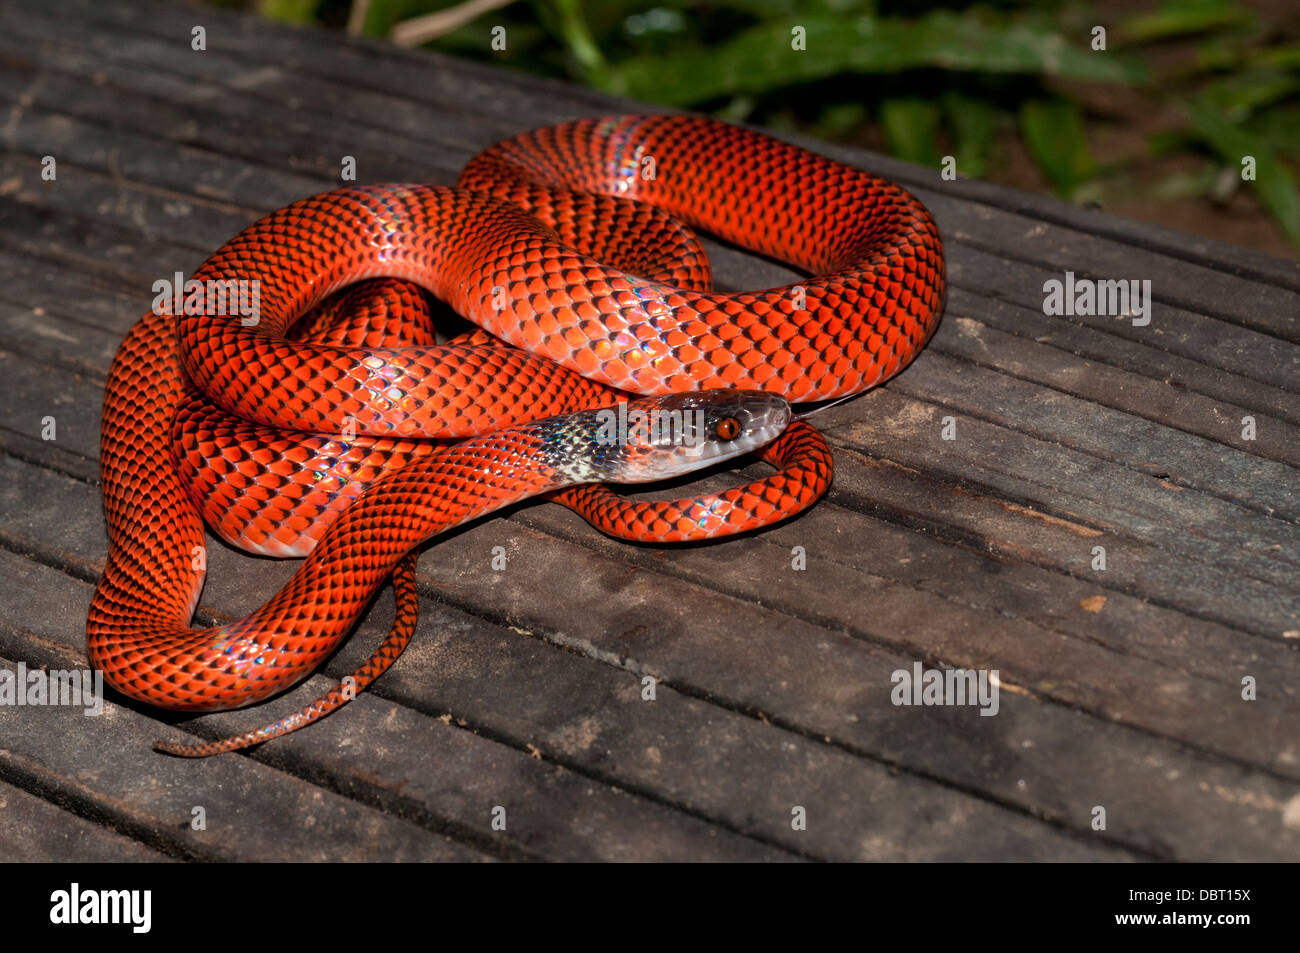 Black-headed calico snake (AKA Tschudi's false coral snake), Tambopata National Reserve, Peru - Stock Image